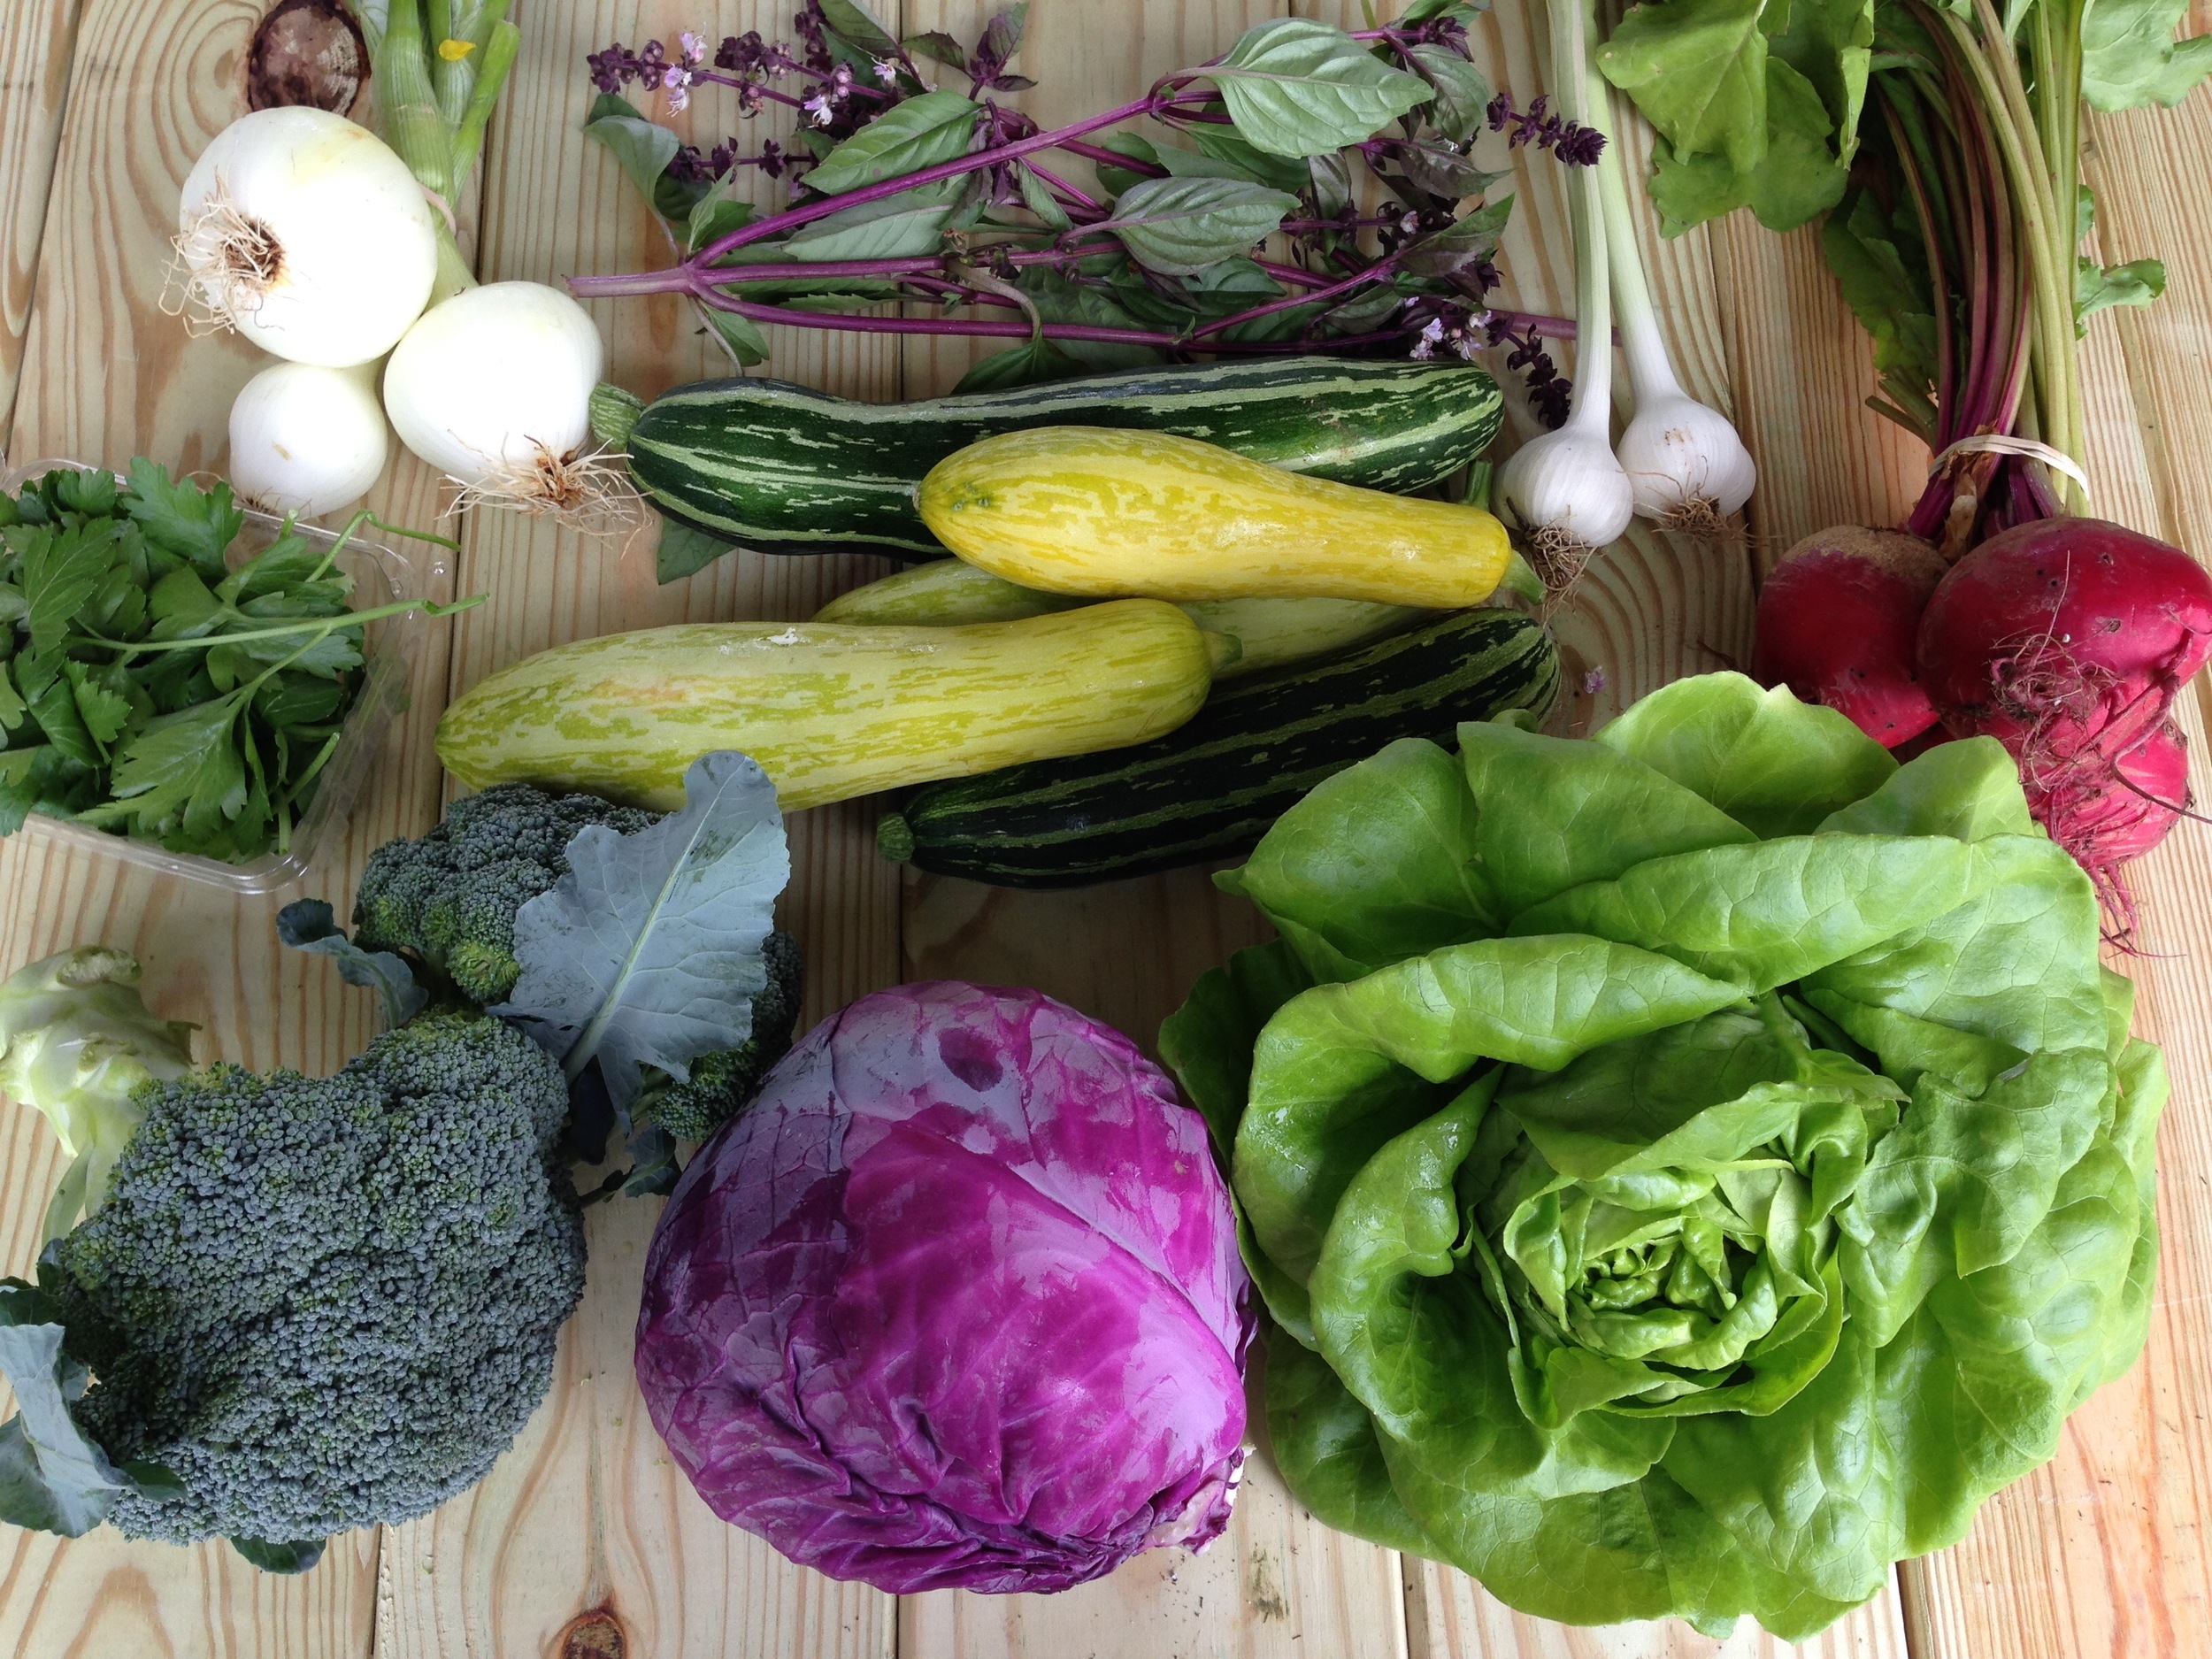 top left to right: onion, Thai basil, and garlic  middle left to right: parsley, squash and zucchini, and beets  bottom left to right: broccoli, purple cabbage, and bibb lettuce